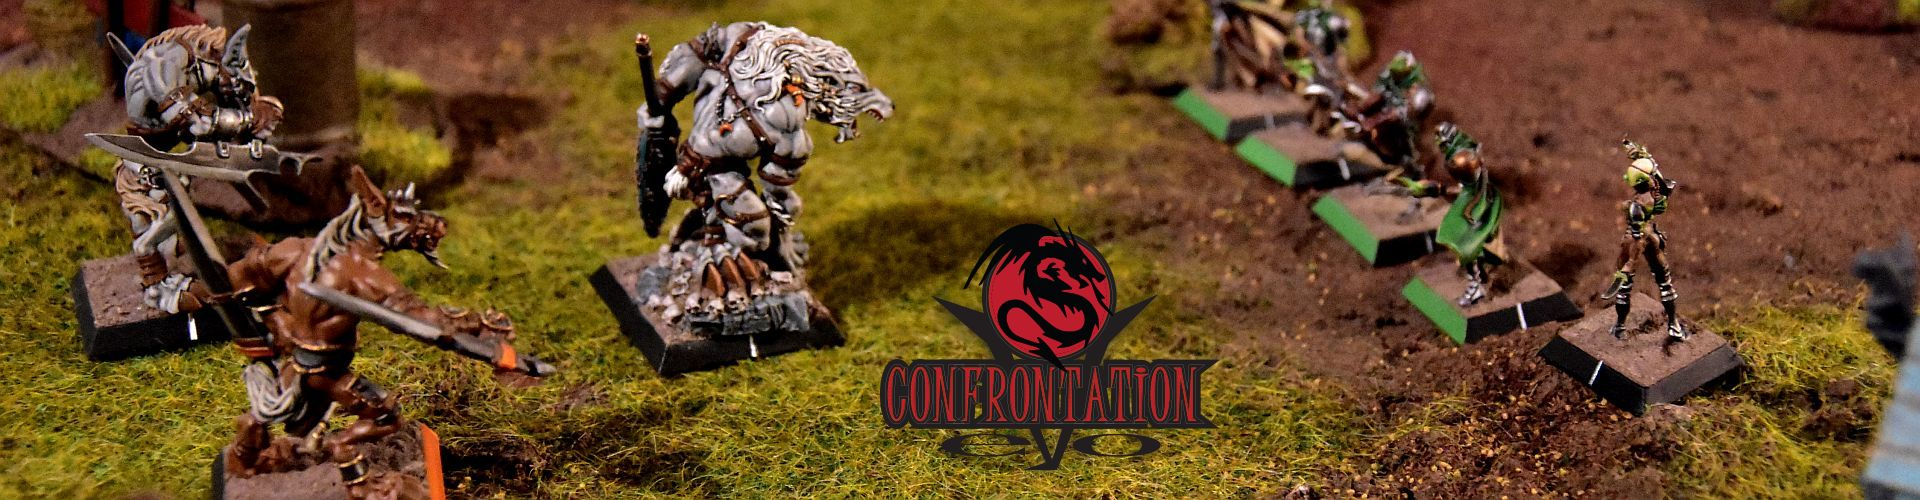 Confrontation header - Demospiele: CONFRONTATION EVOLUTION